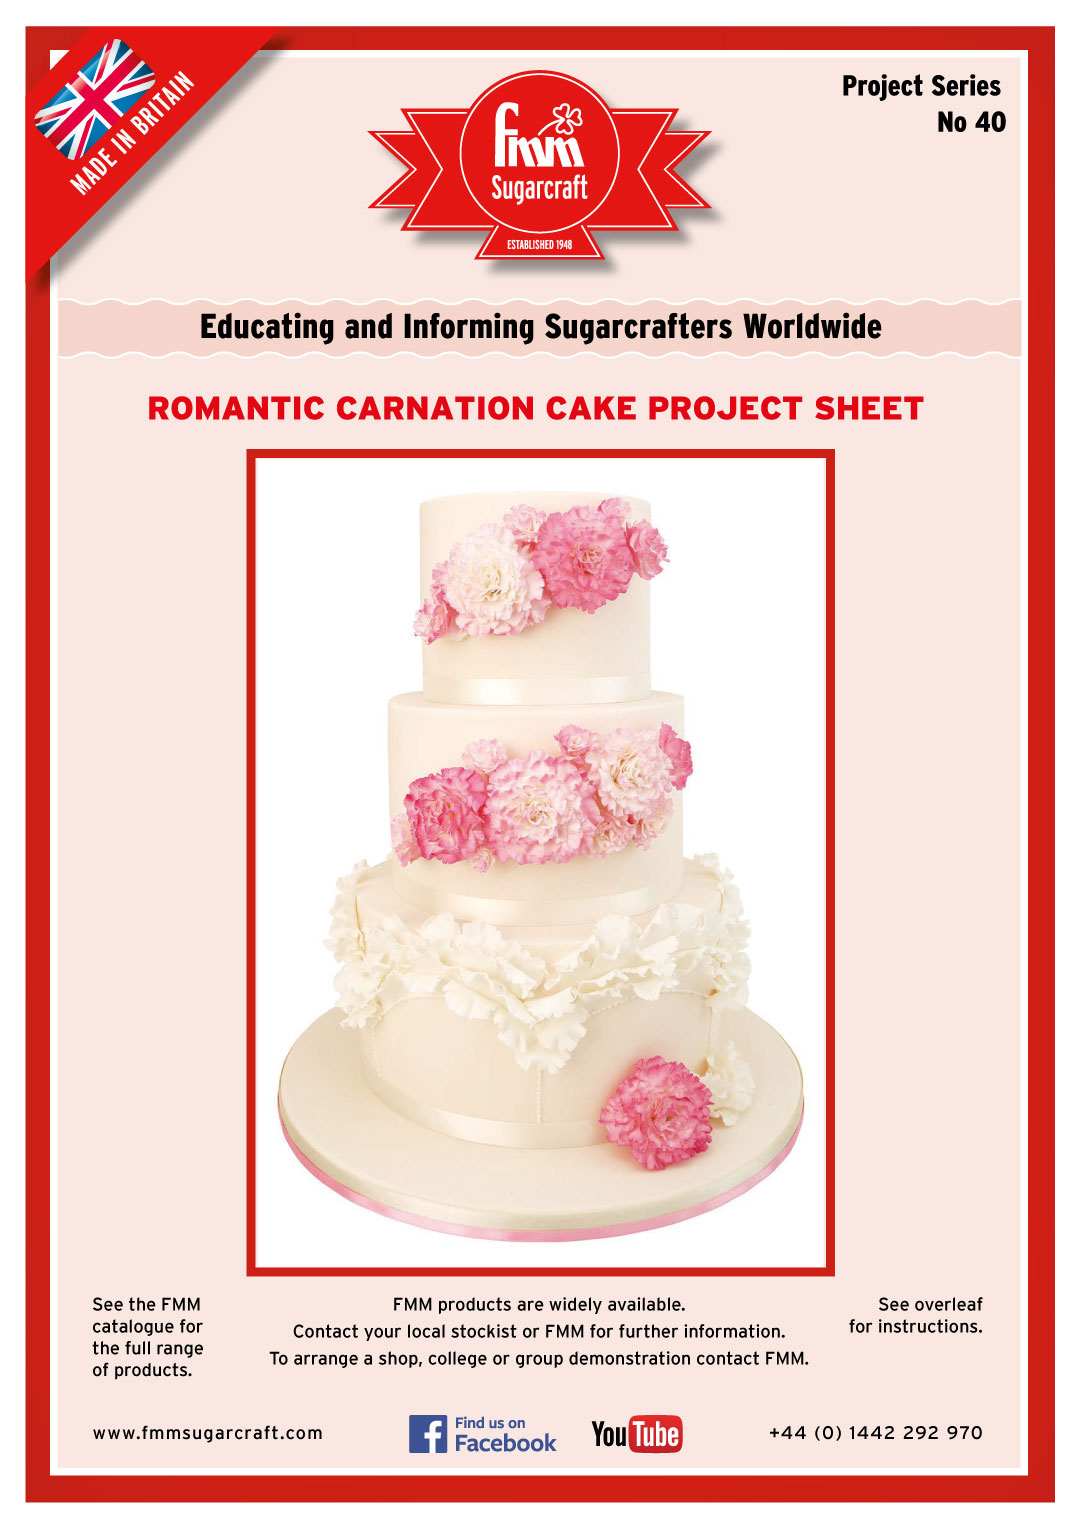 How to make a Romantic Carnation Cake - FMM Sugarcraft Project No. 40